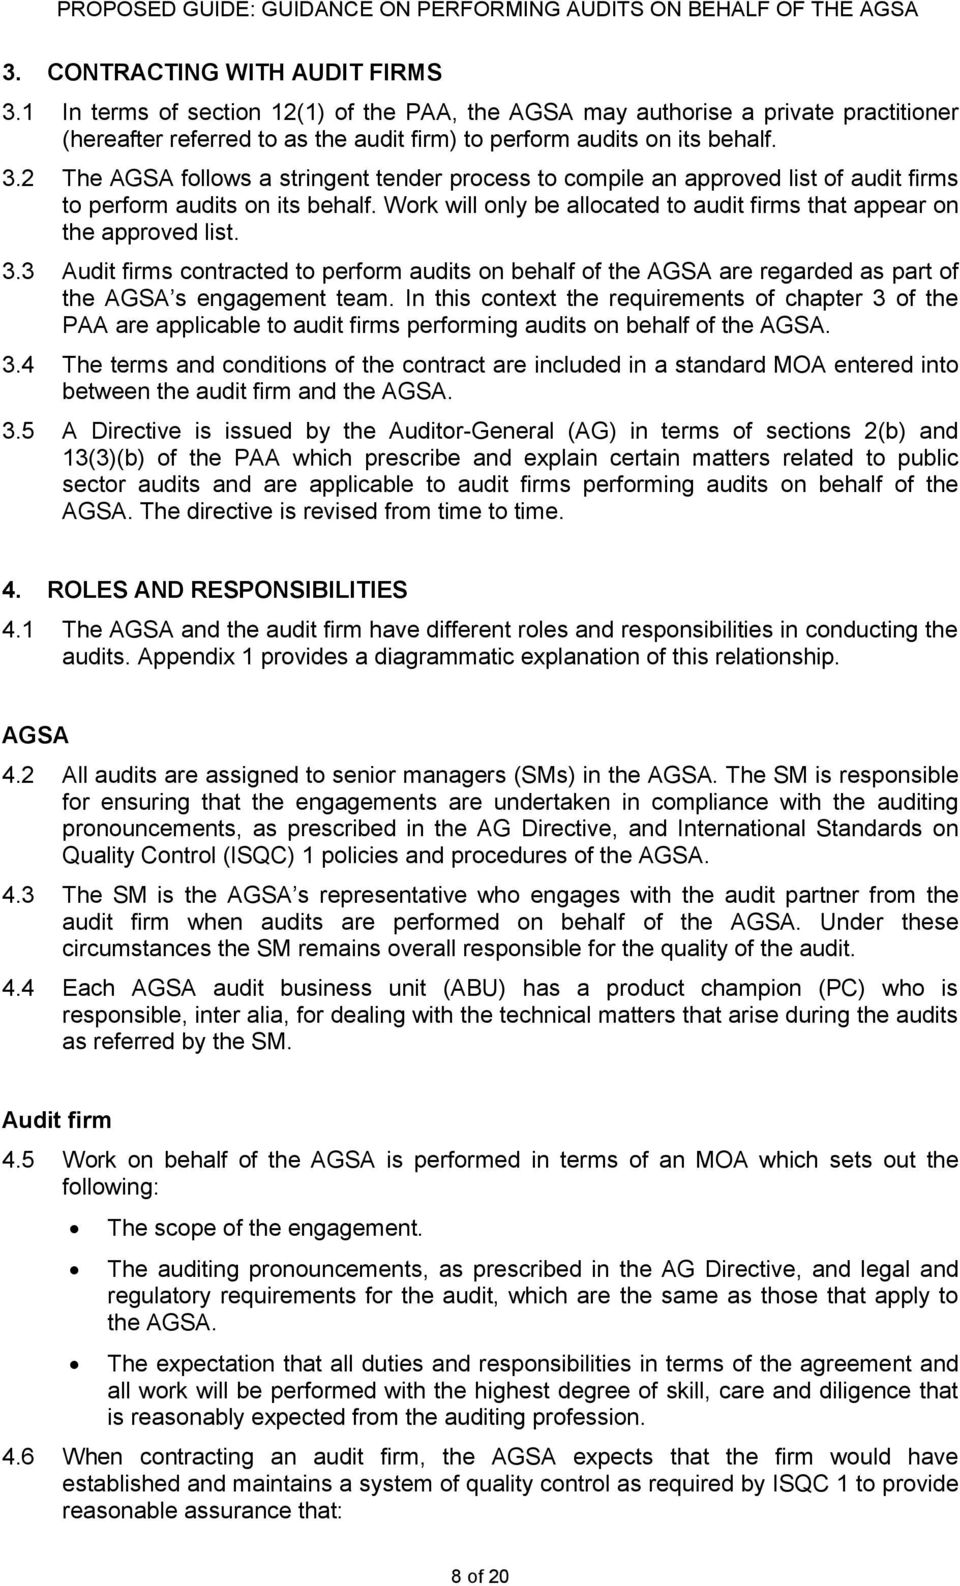 In this context the requirements of chapter 3 of the PAA are applicable to audit firms performing audits on behalf of the AGSA. 3.4 The terms and conditions of the contract are included in a standard MOA entered into between the audit firm and the AGSA.